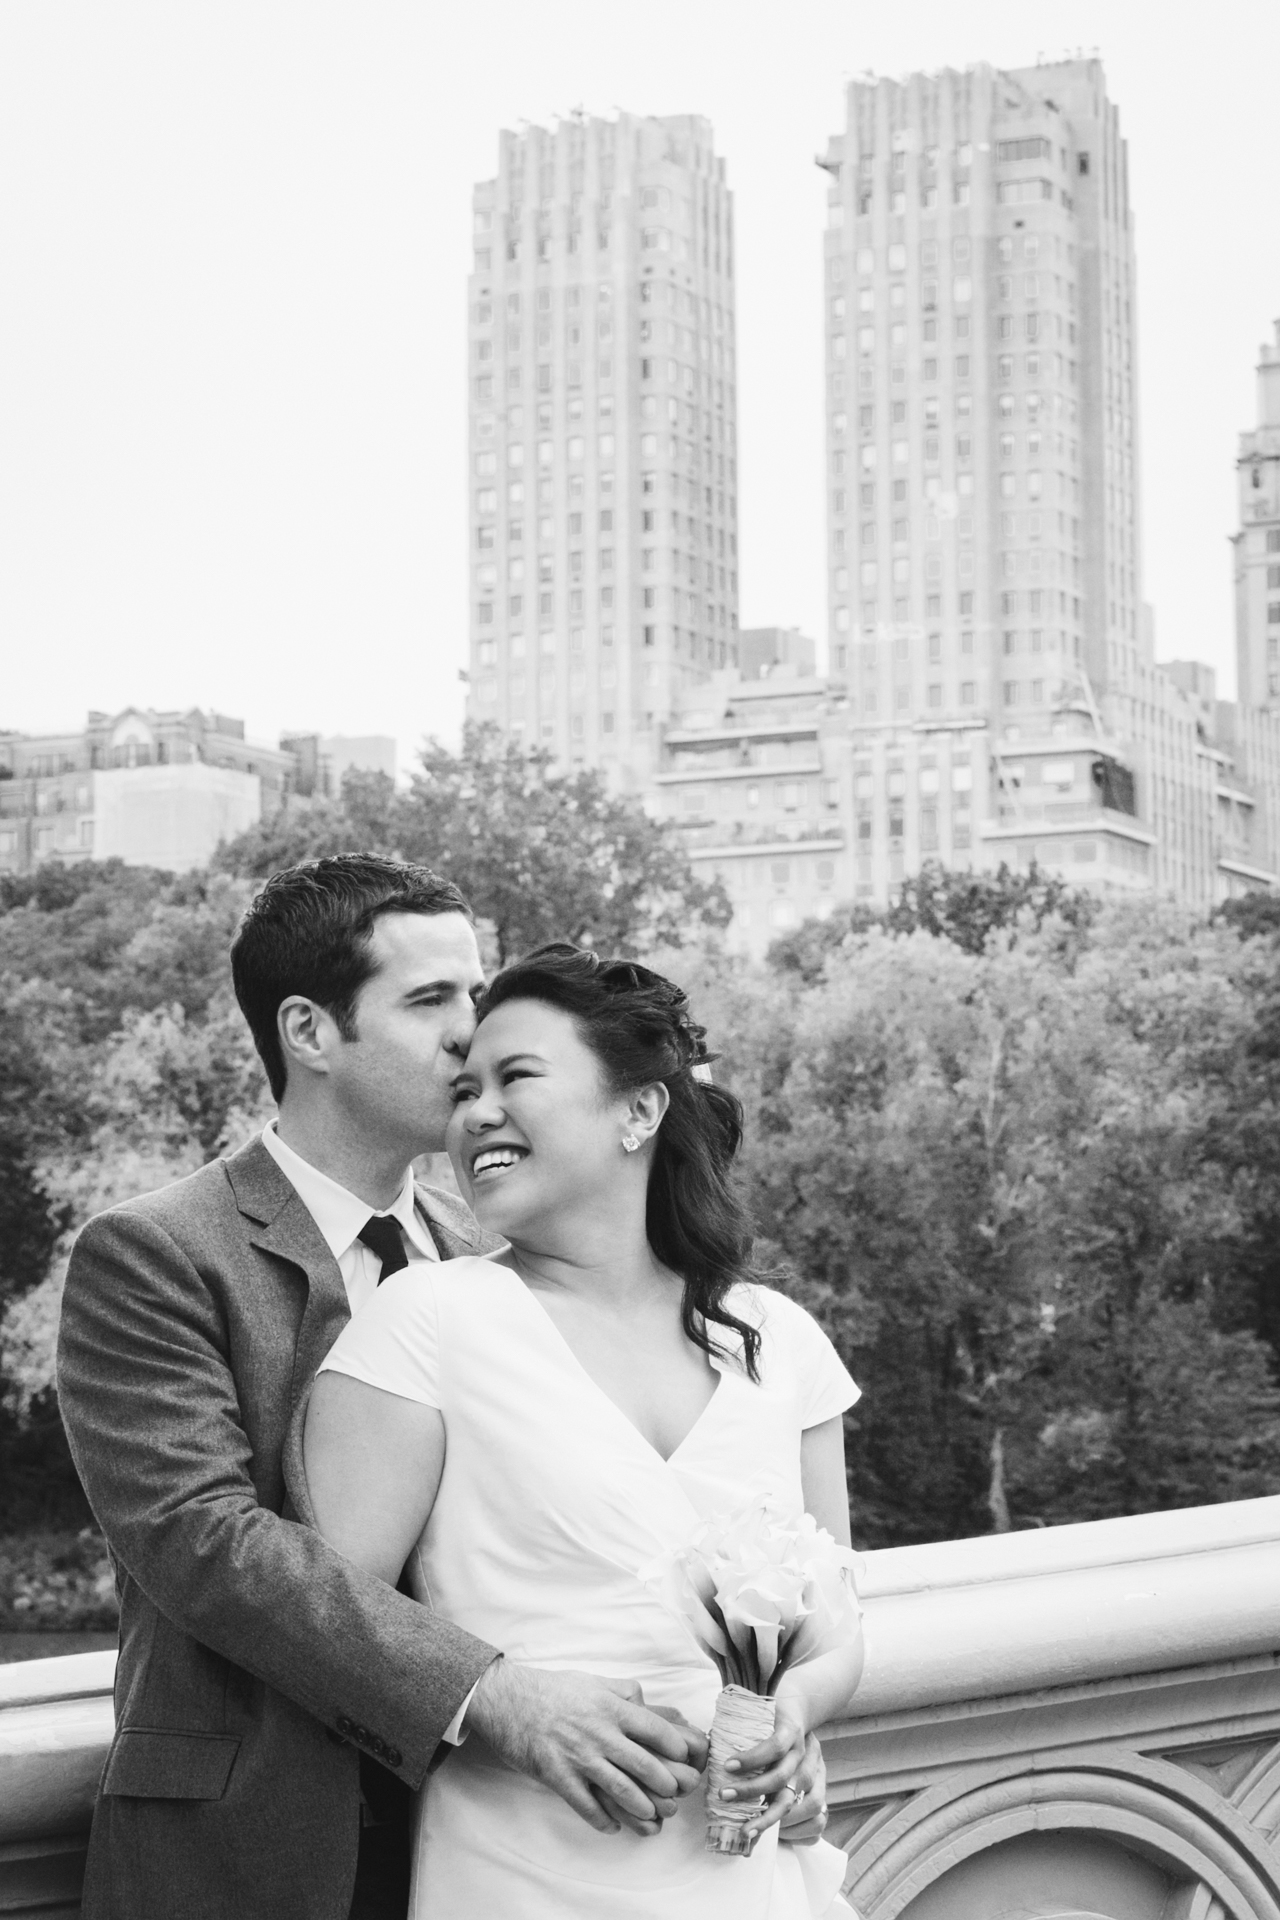 The bride and groom meet before their ceremony in Central Park NYC